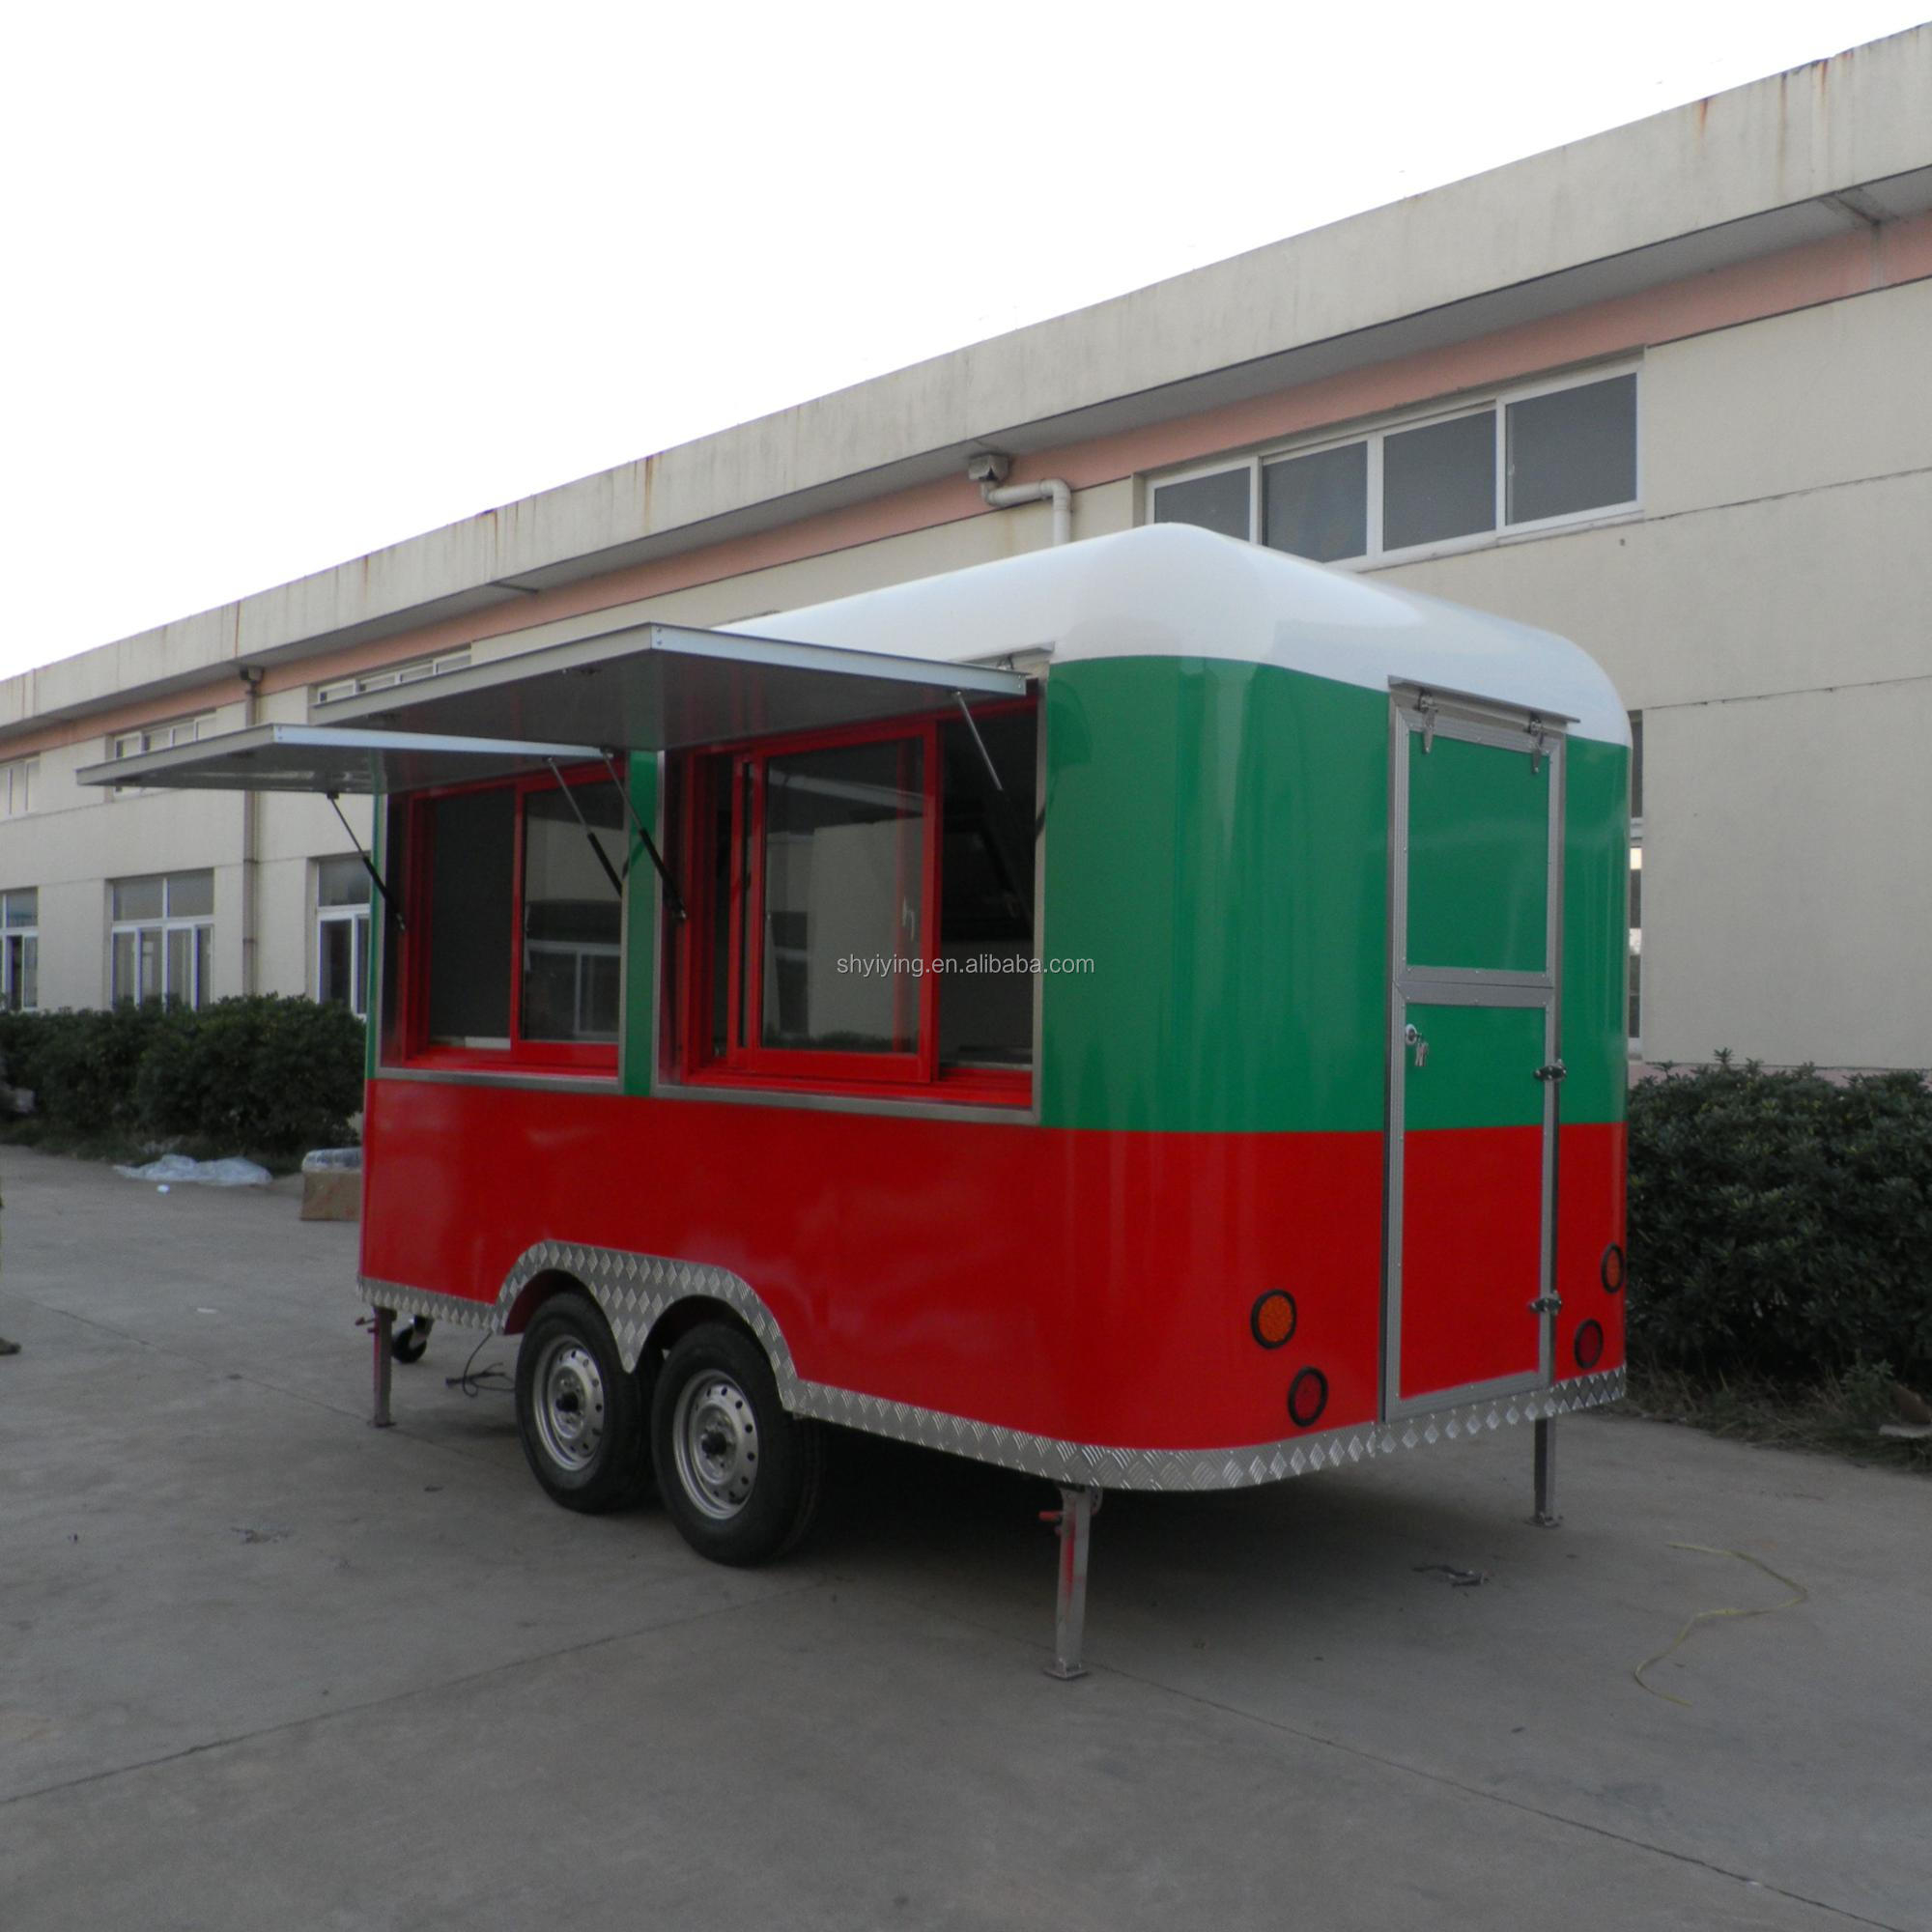 Food Truck For Sale Thailand Food Truck For Sale Thailand Suppliers